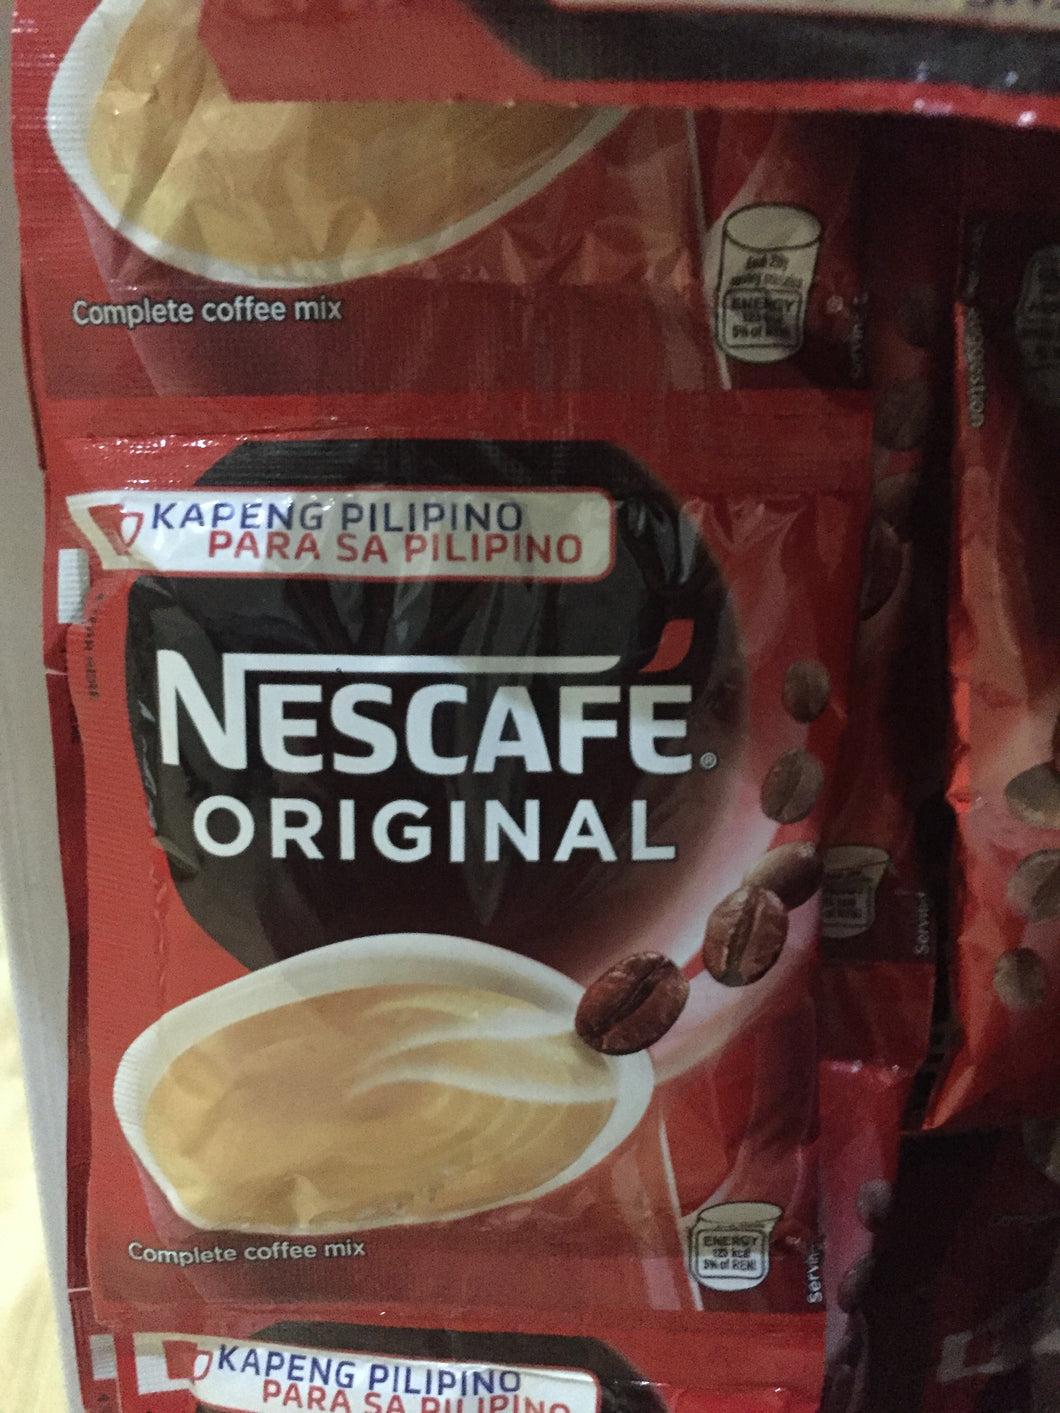 Nescafe Original 3in1 single